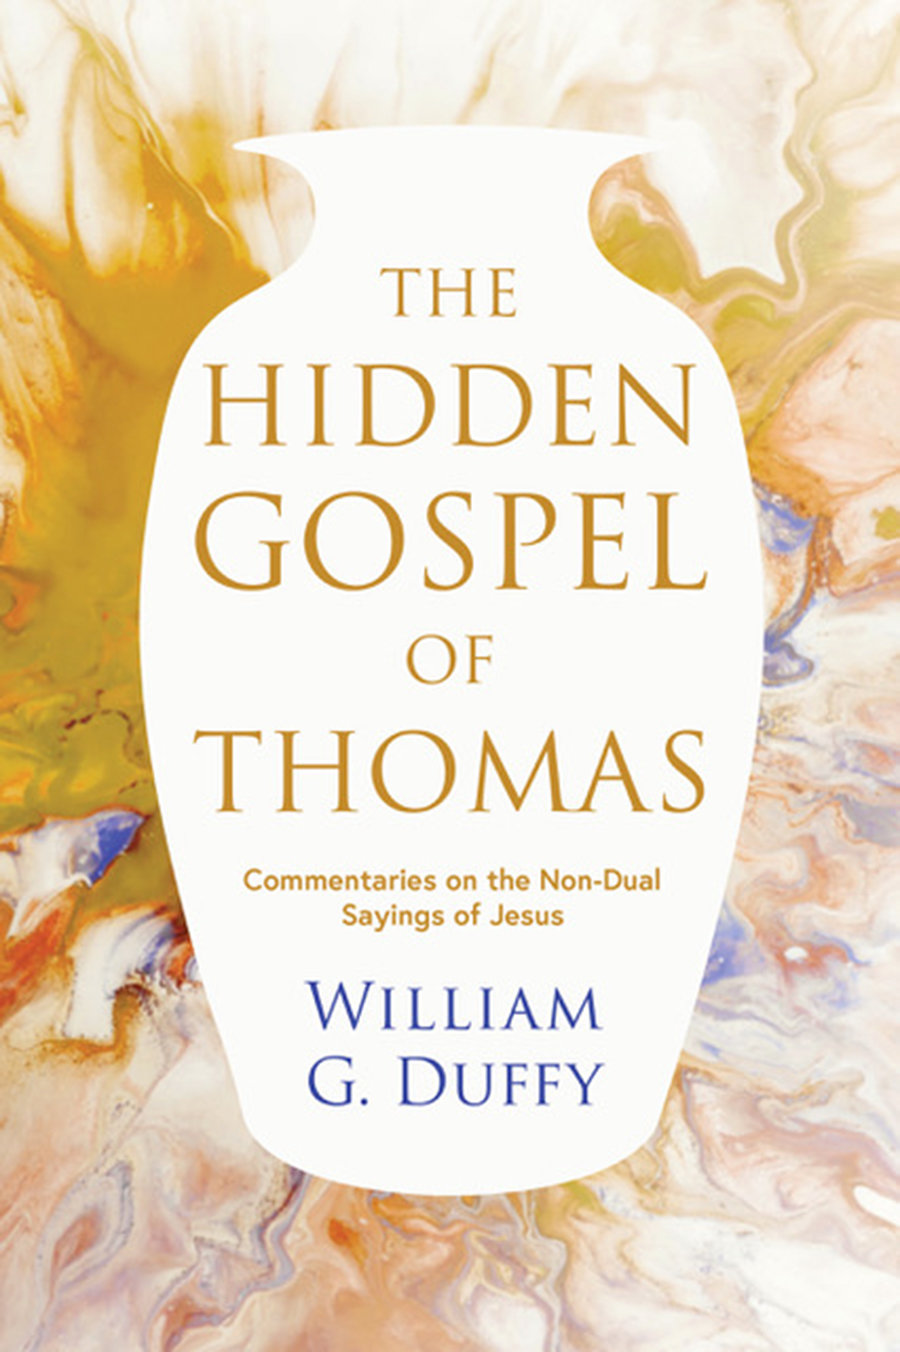 GOSPEL ANALYSIS — William G. Duffy, of Clinton, recently released his book that gives literary analysis of the Gospel of Thomas, which was discovered in Egypt in 1945.  Duffy has been writing about the gospel for about 36 years.